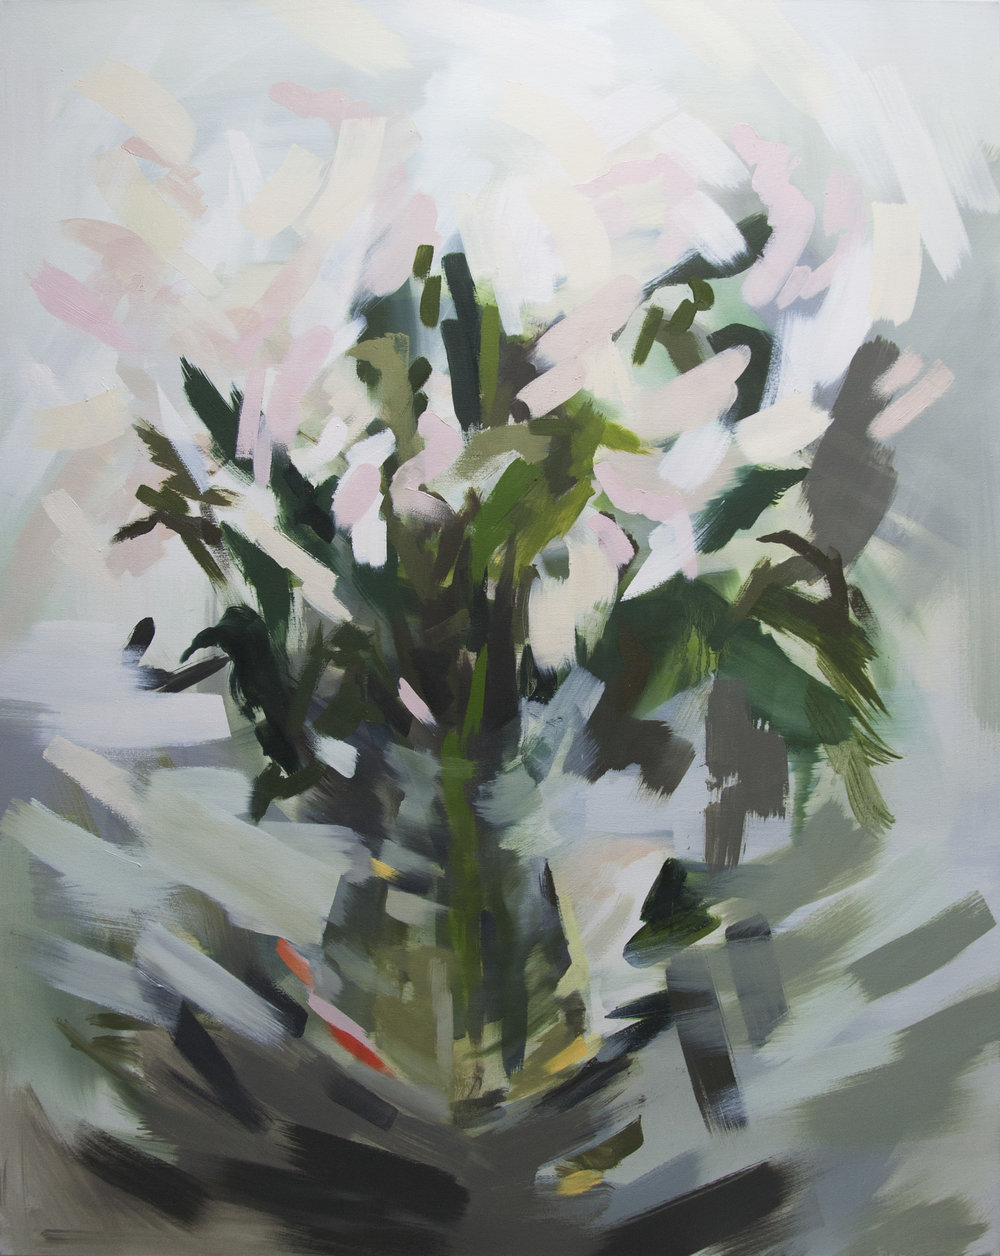 Canopy   4' x 5', oil on canvas  2018, sold